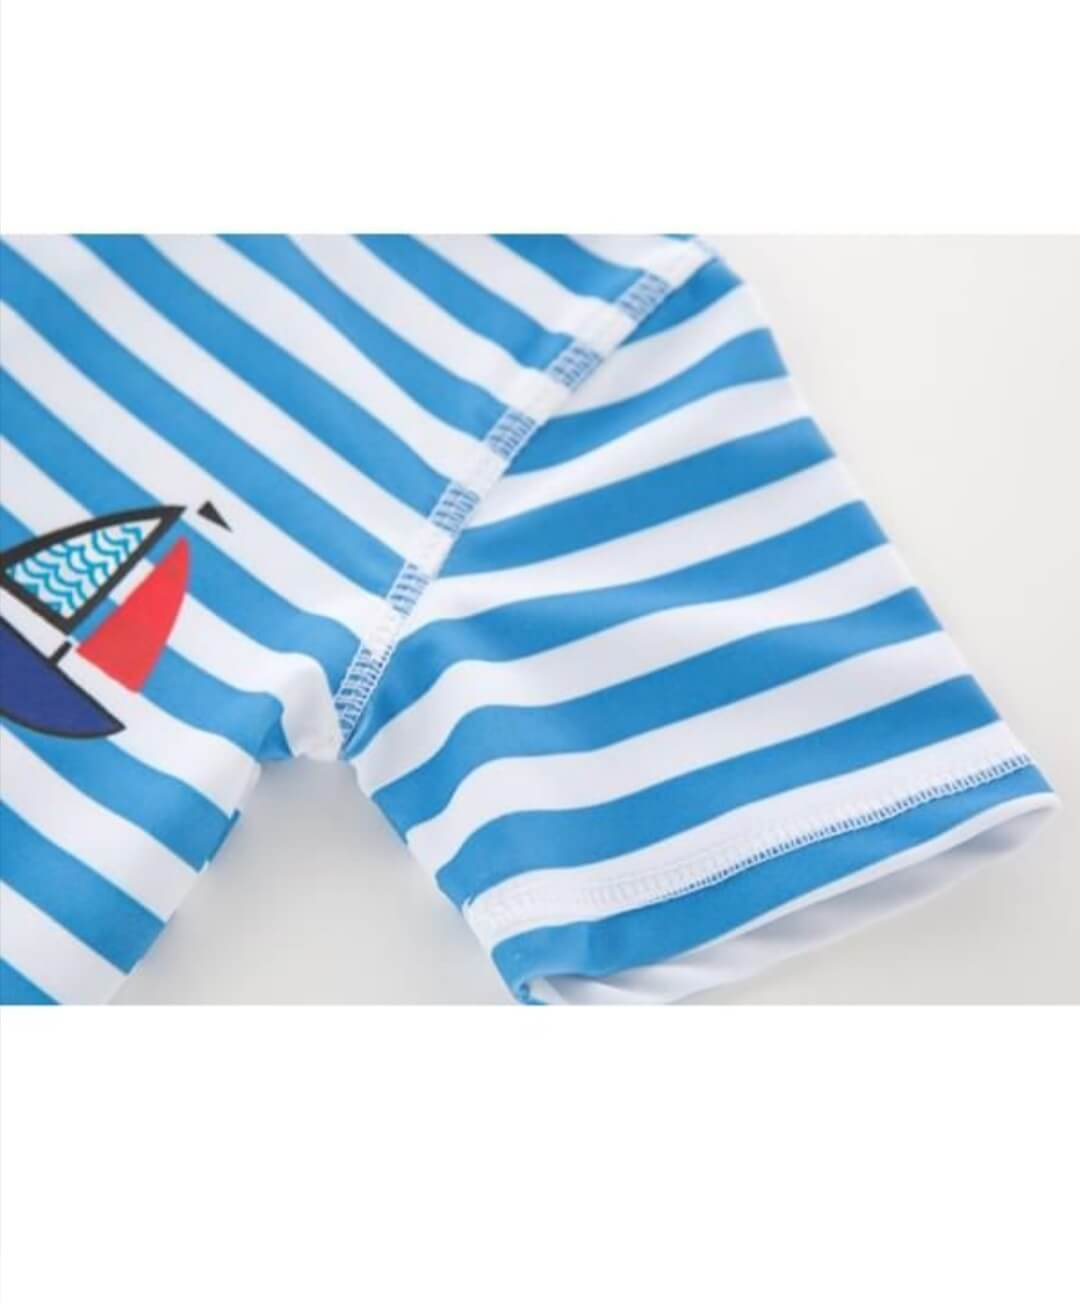 3 piece boats printed stripped swimwear set 2 to 3 years